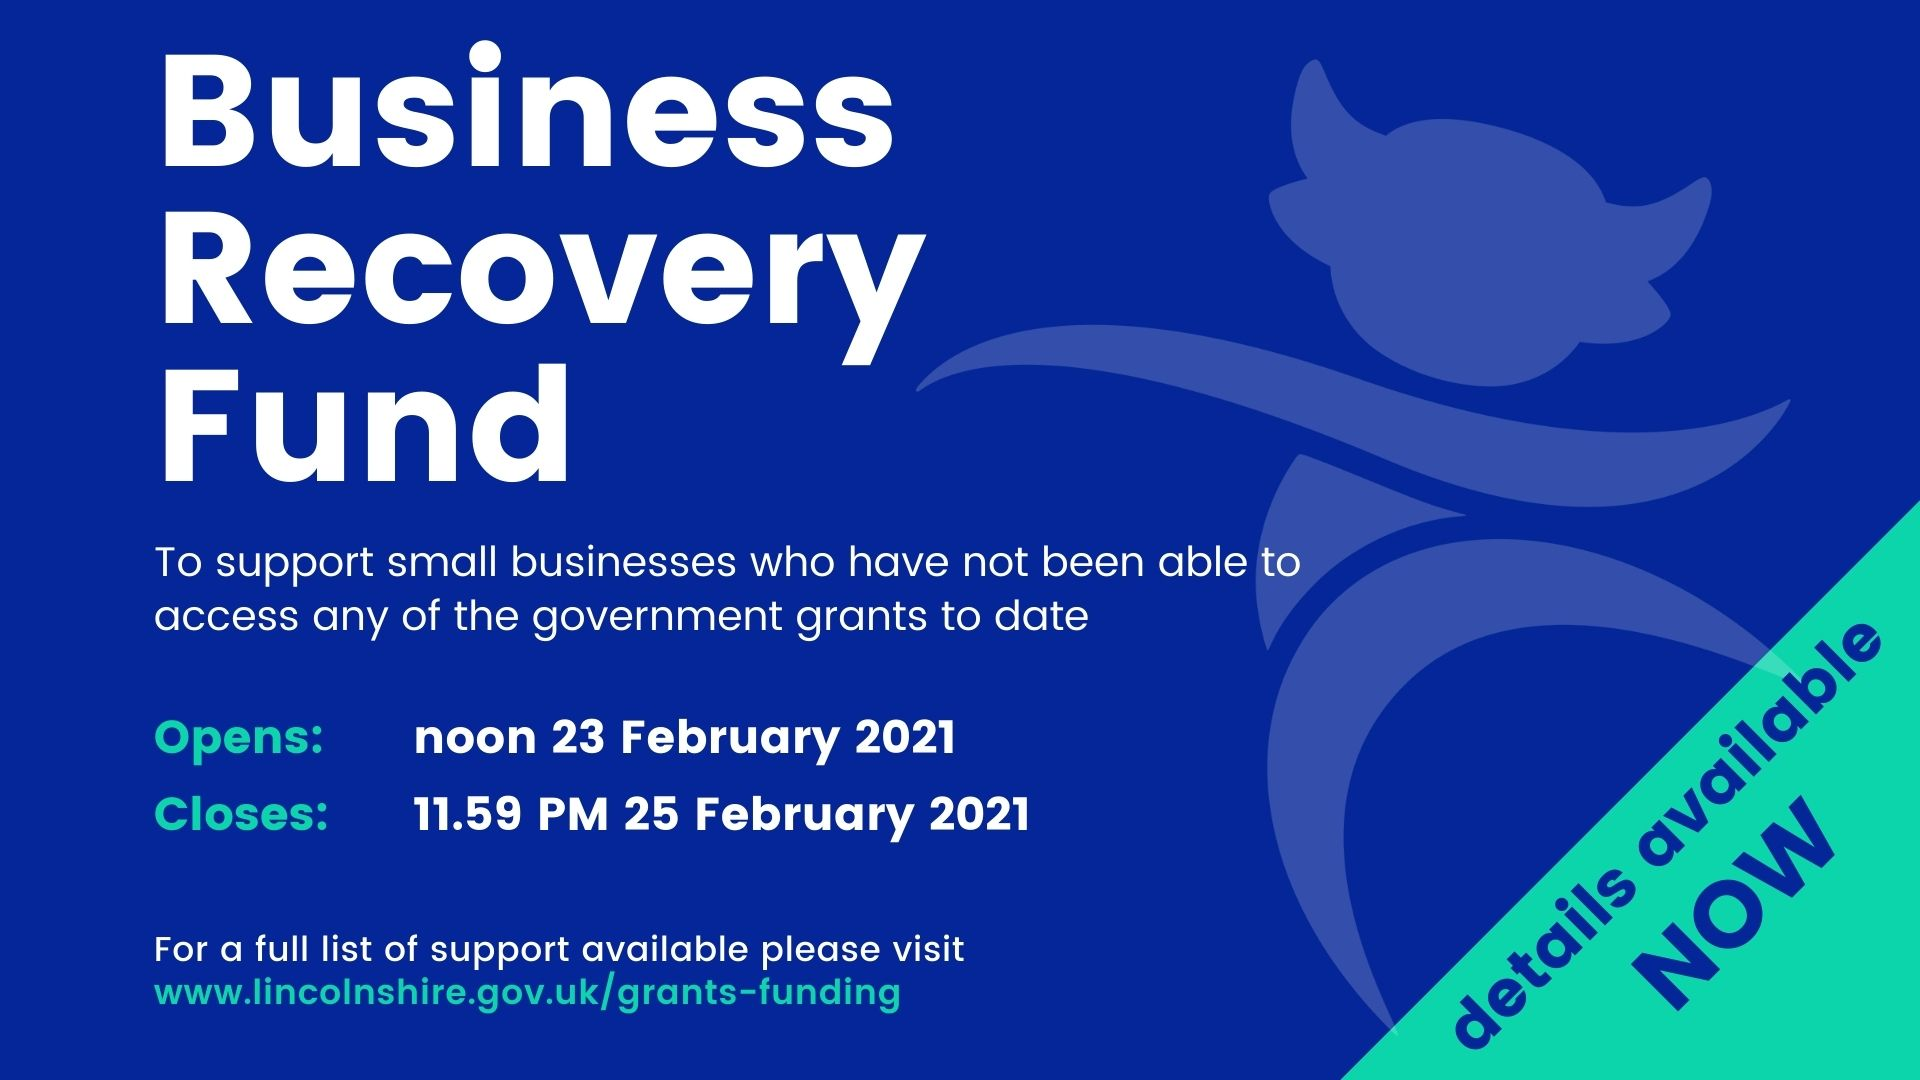 Business Recovery Fund - details available